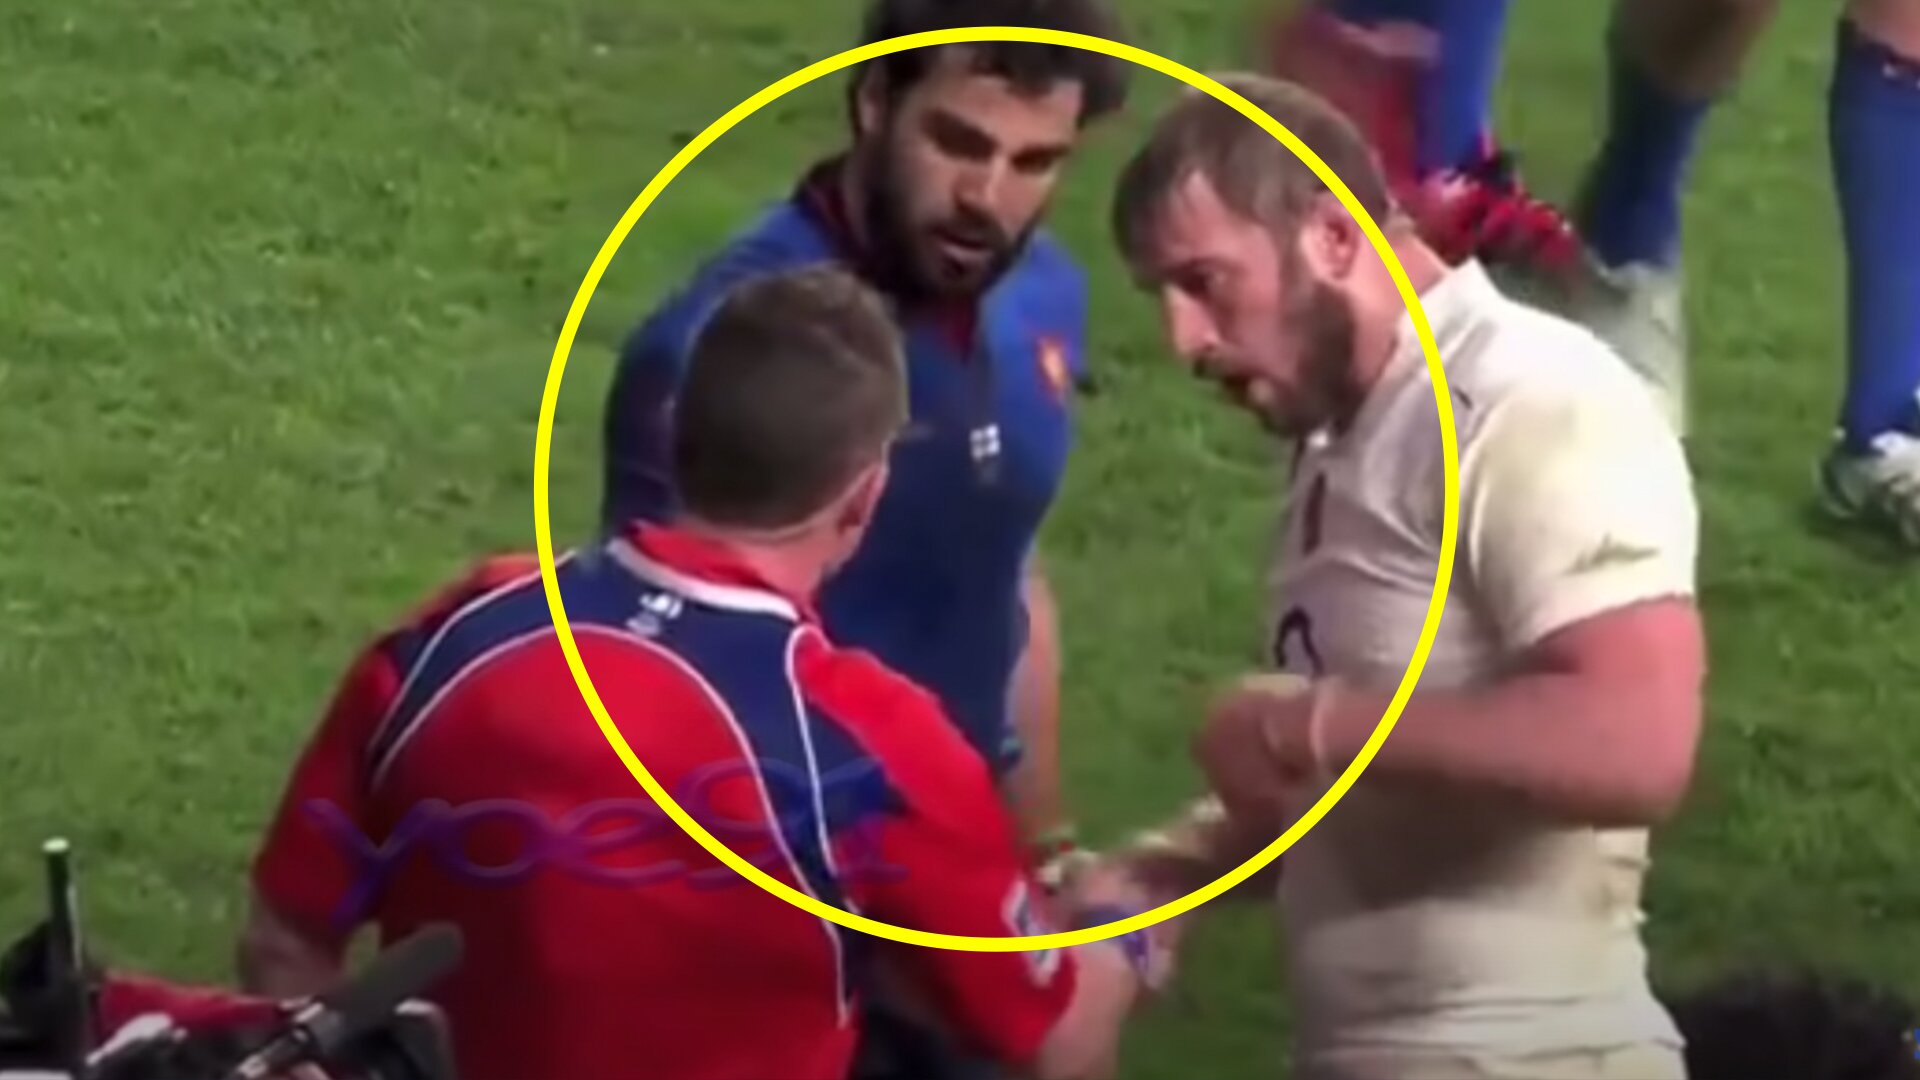 New video shows the very best and worst of French rugby star Yoann Huget as he announces retirement